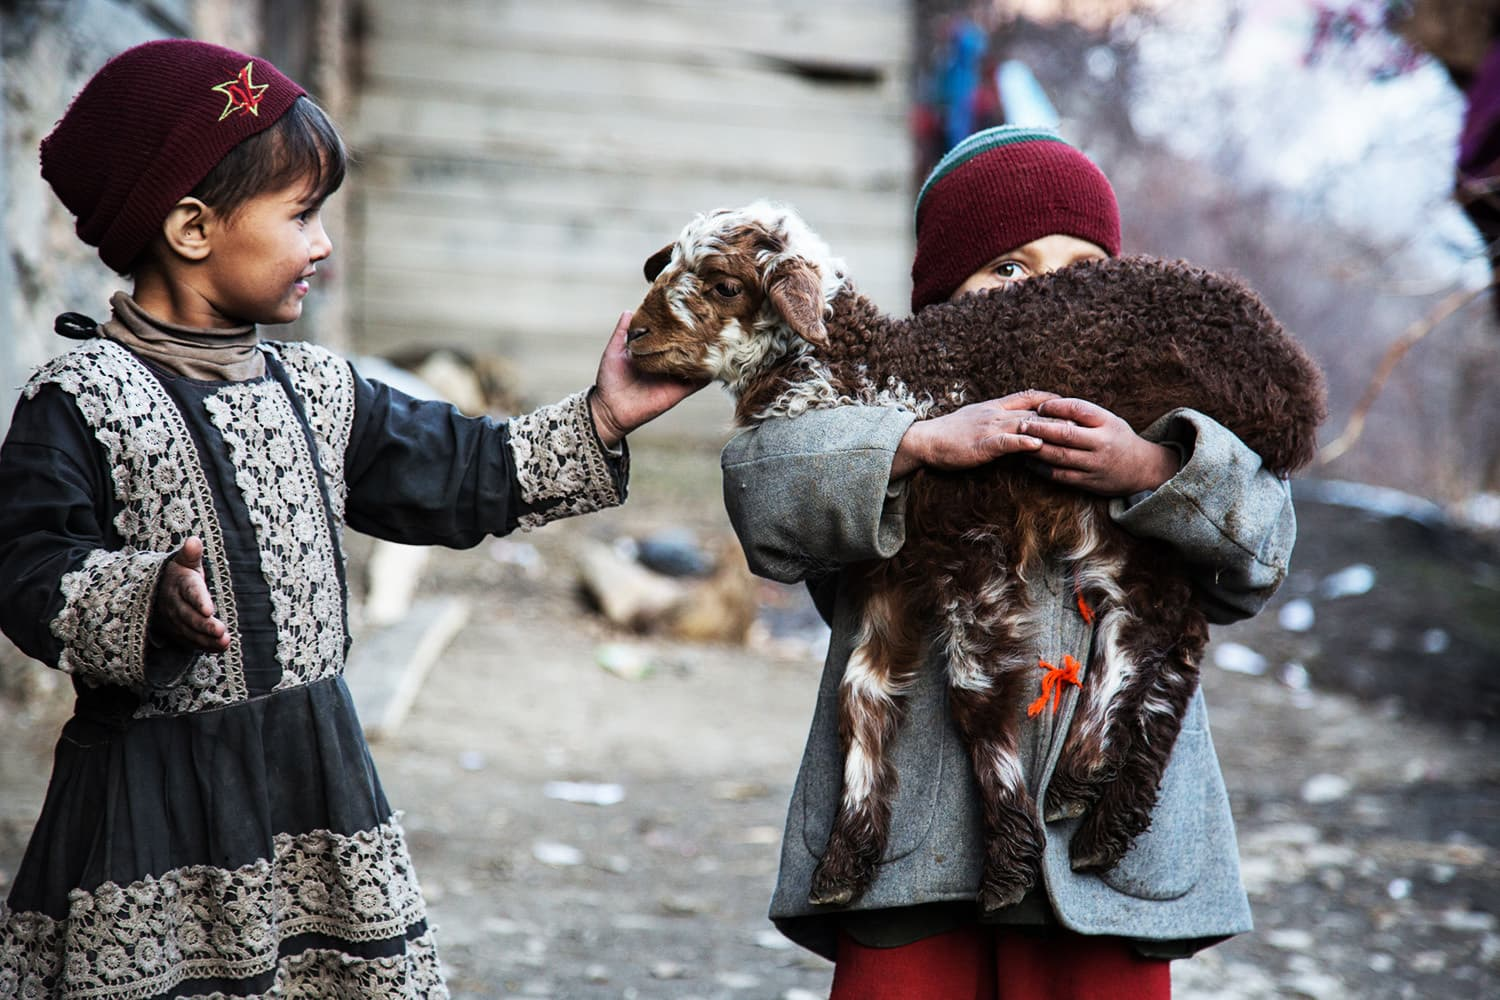 Children play with a lamb